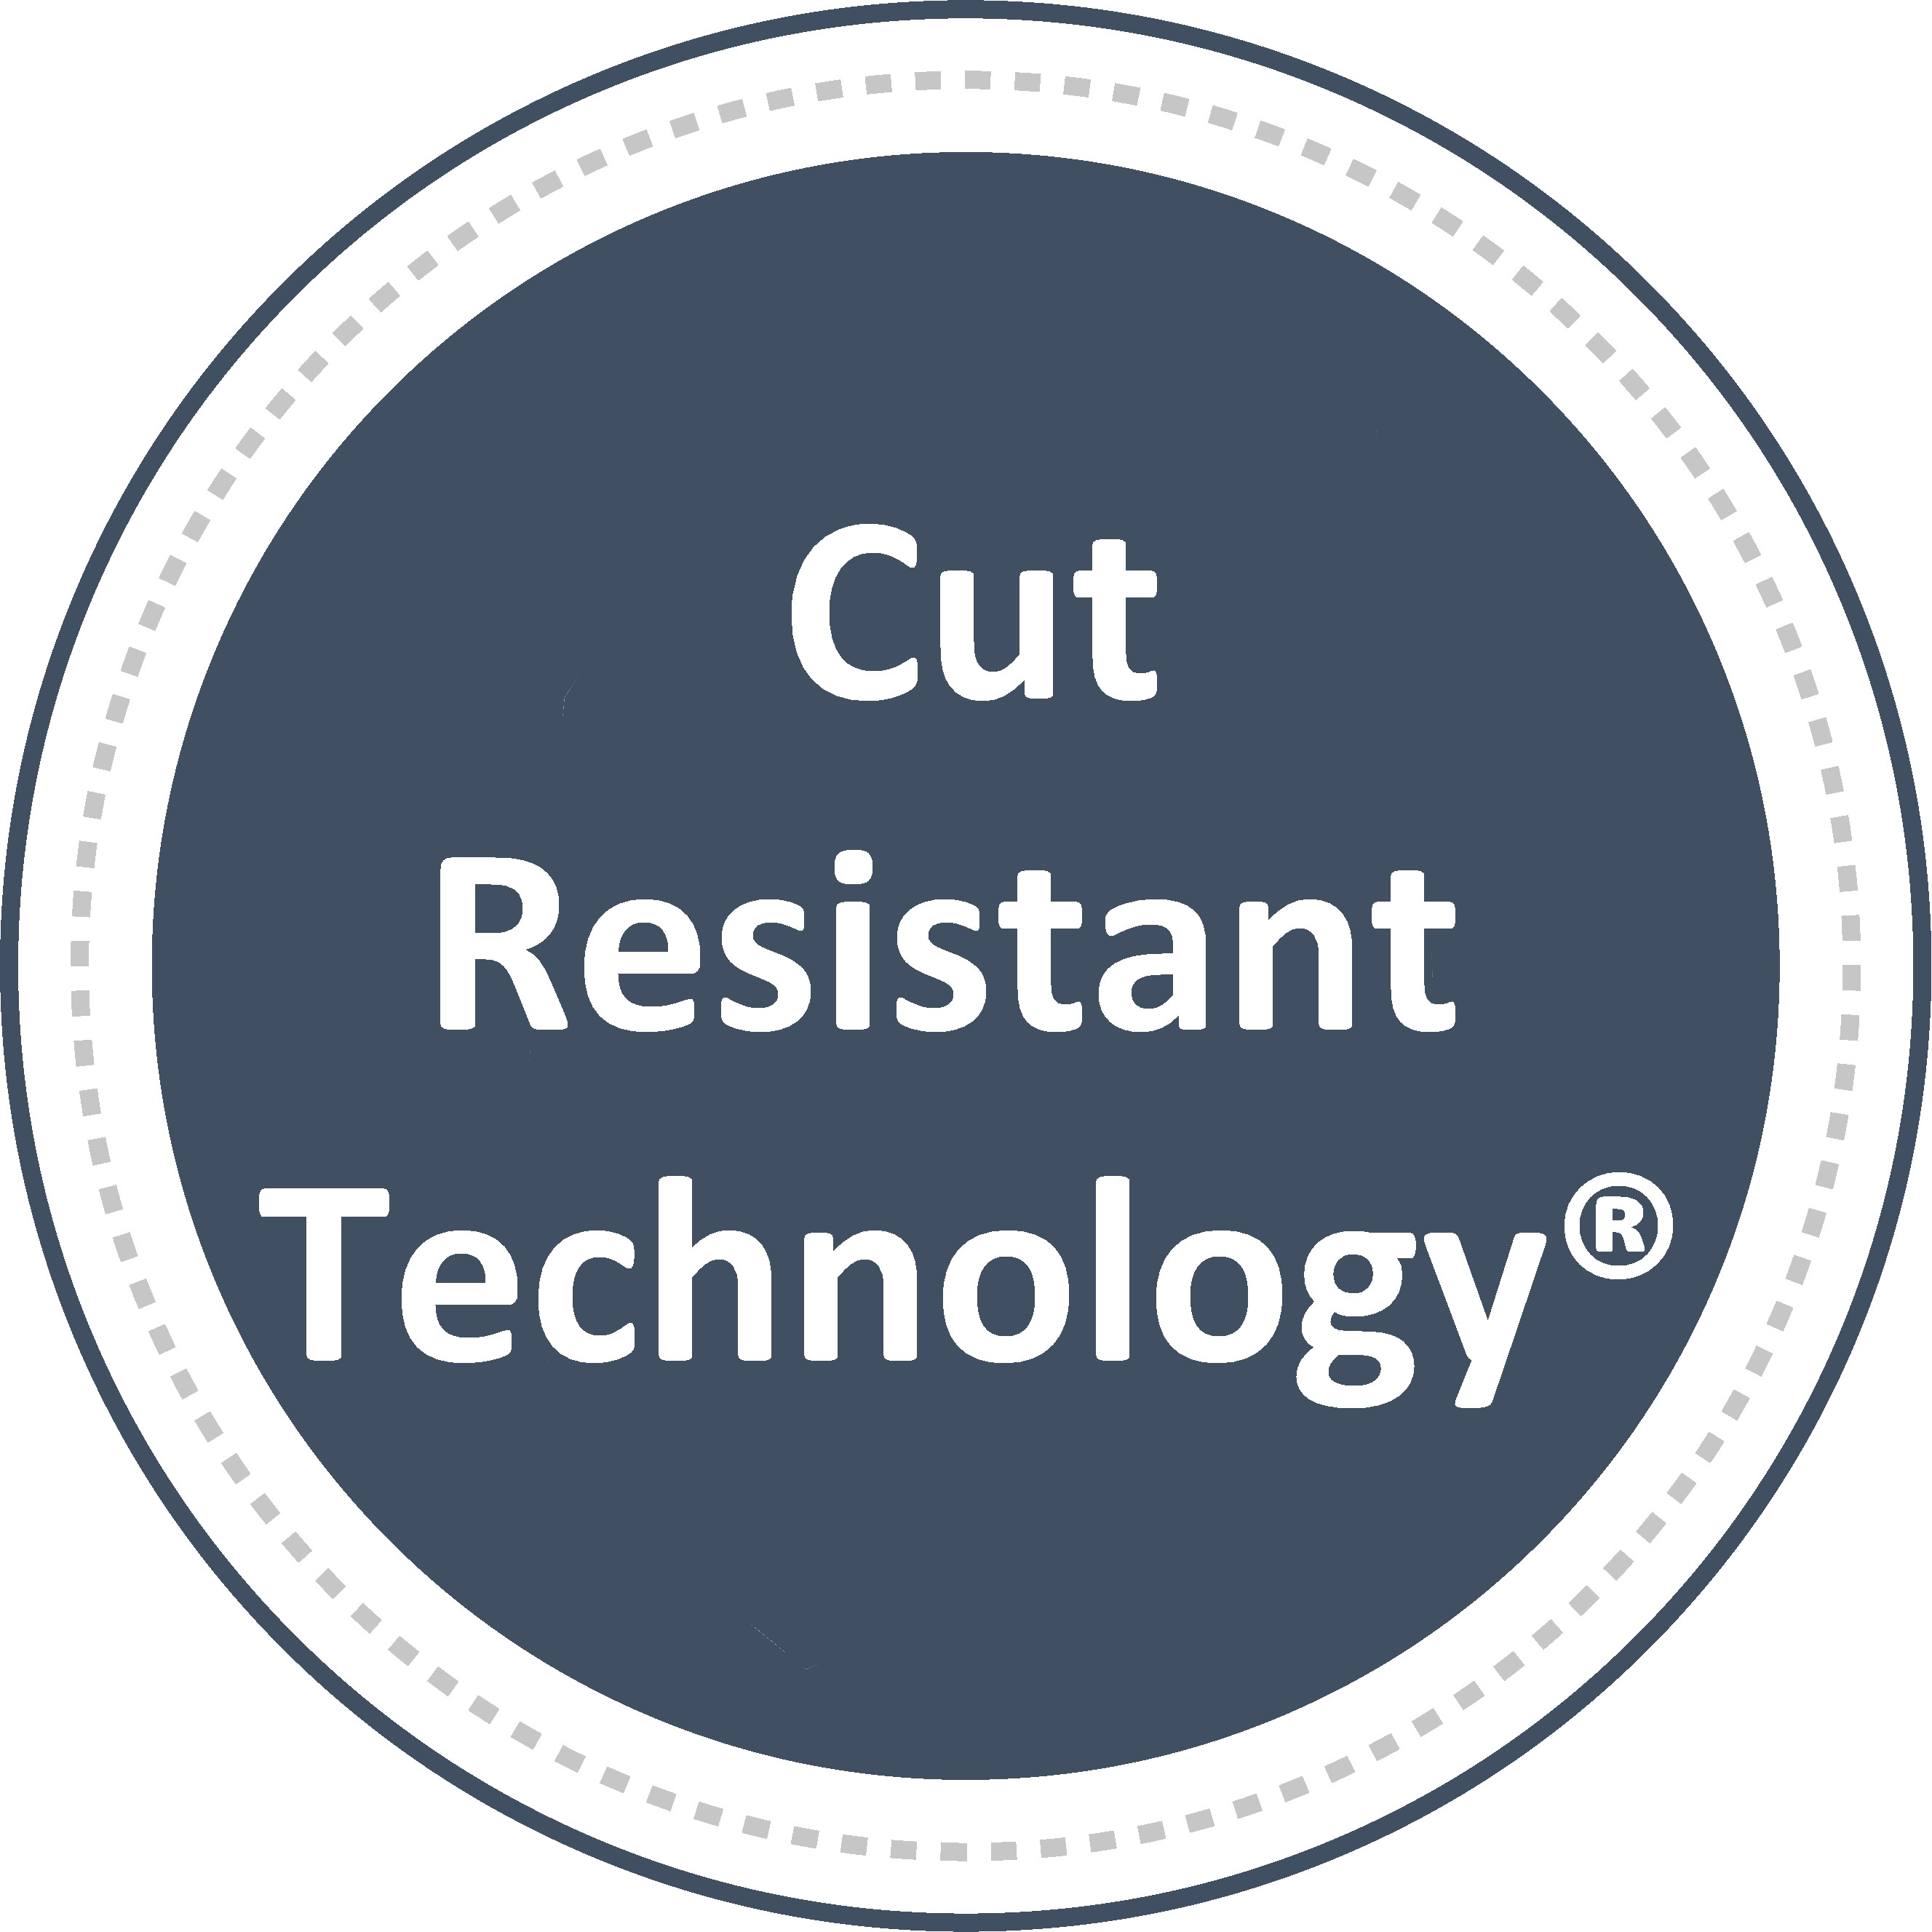 15 CUT RESISTANT TECHNOLOGY picto.jpg